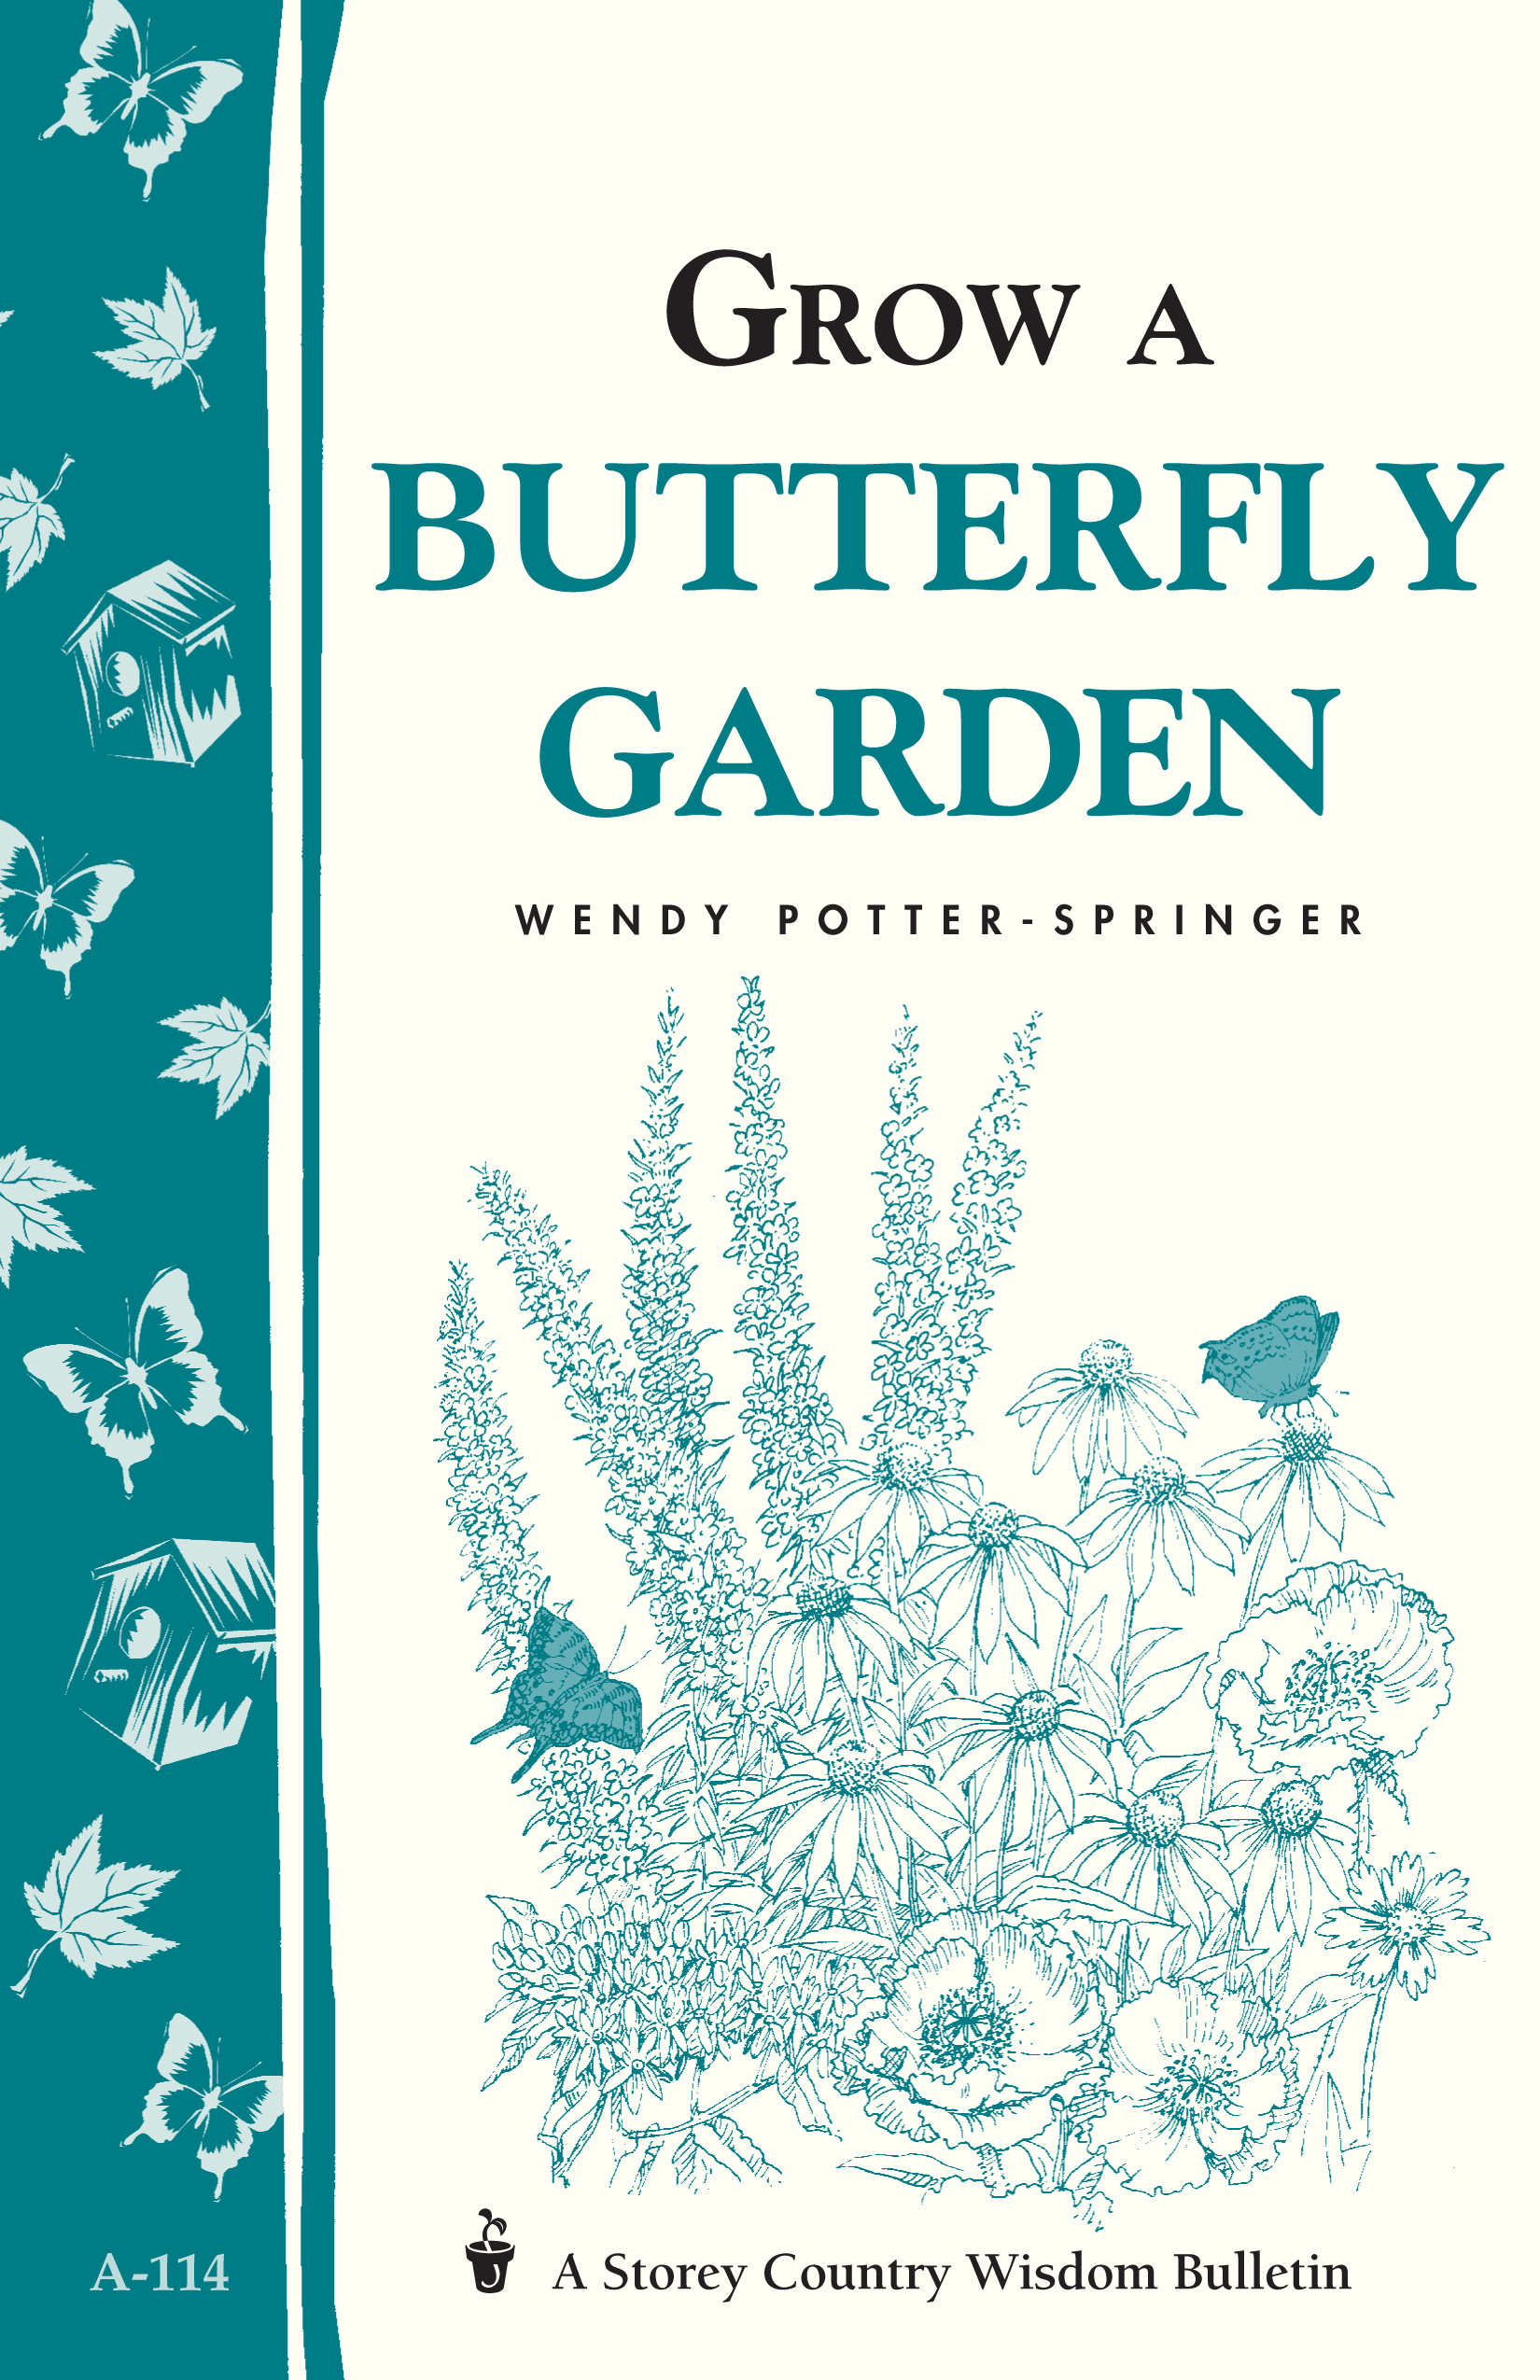 Grow a Butterfly Garden By: Wendy Potter-Springer